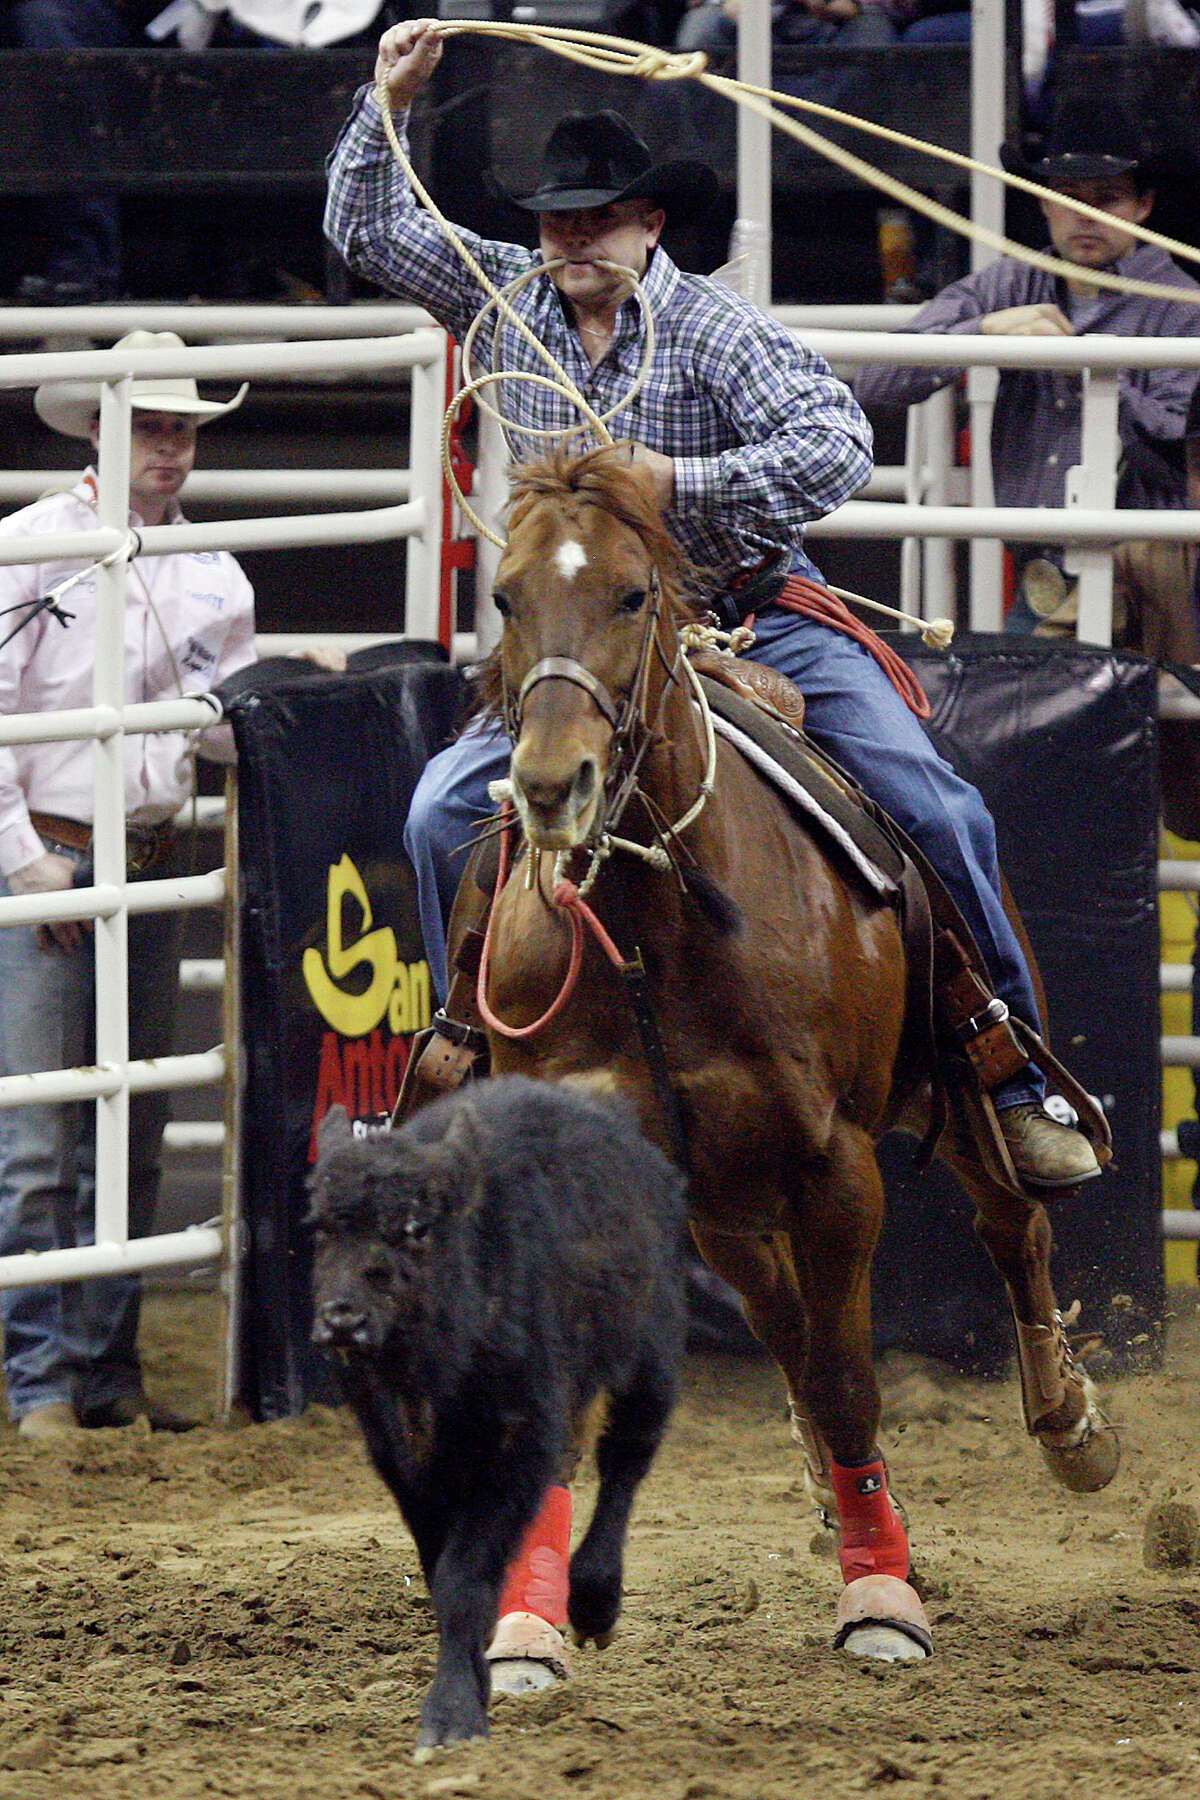 Tie-down roper Scott Kormos, off to a fast start in the competition, comes out of the chute chasing a calf at the San Antonio Stock Show & Rodeo.